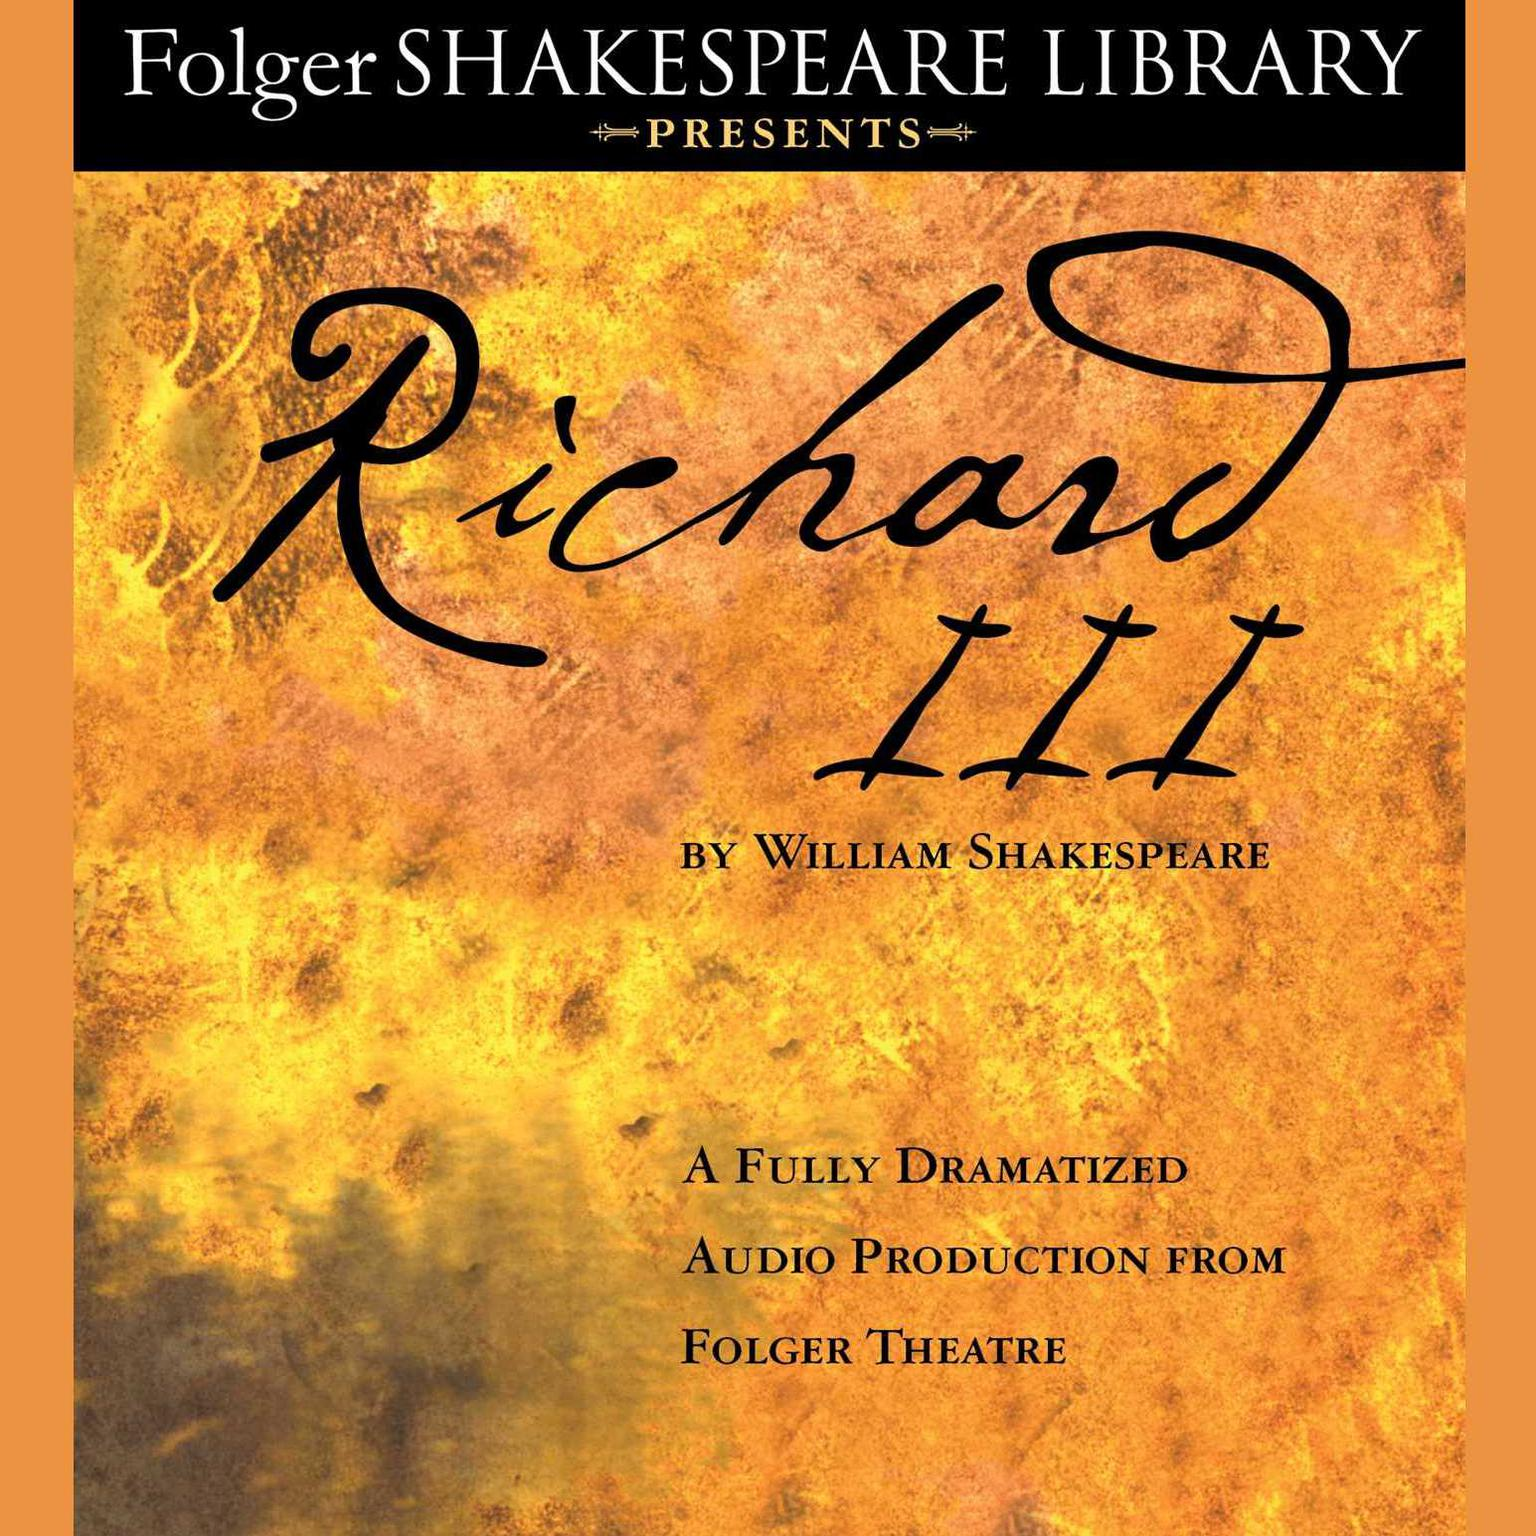 Printable Richard III: Folger Theatre Shakespeare Library Presents Audiobook Cover Art